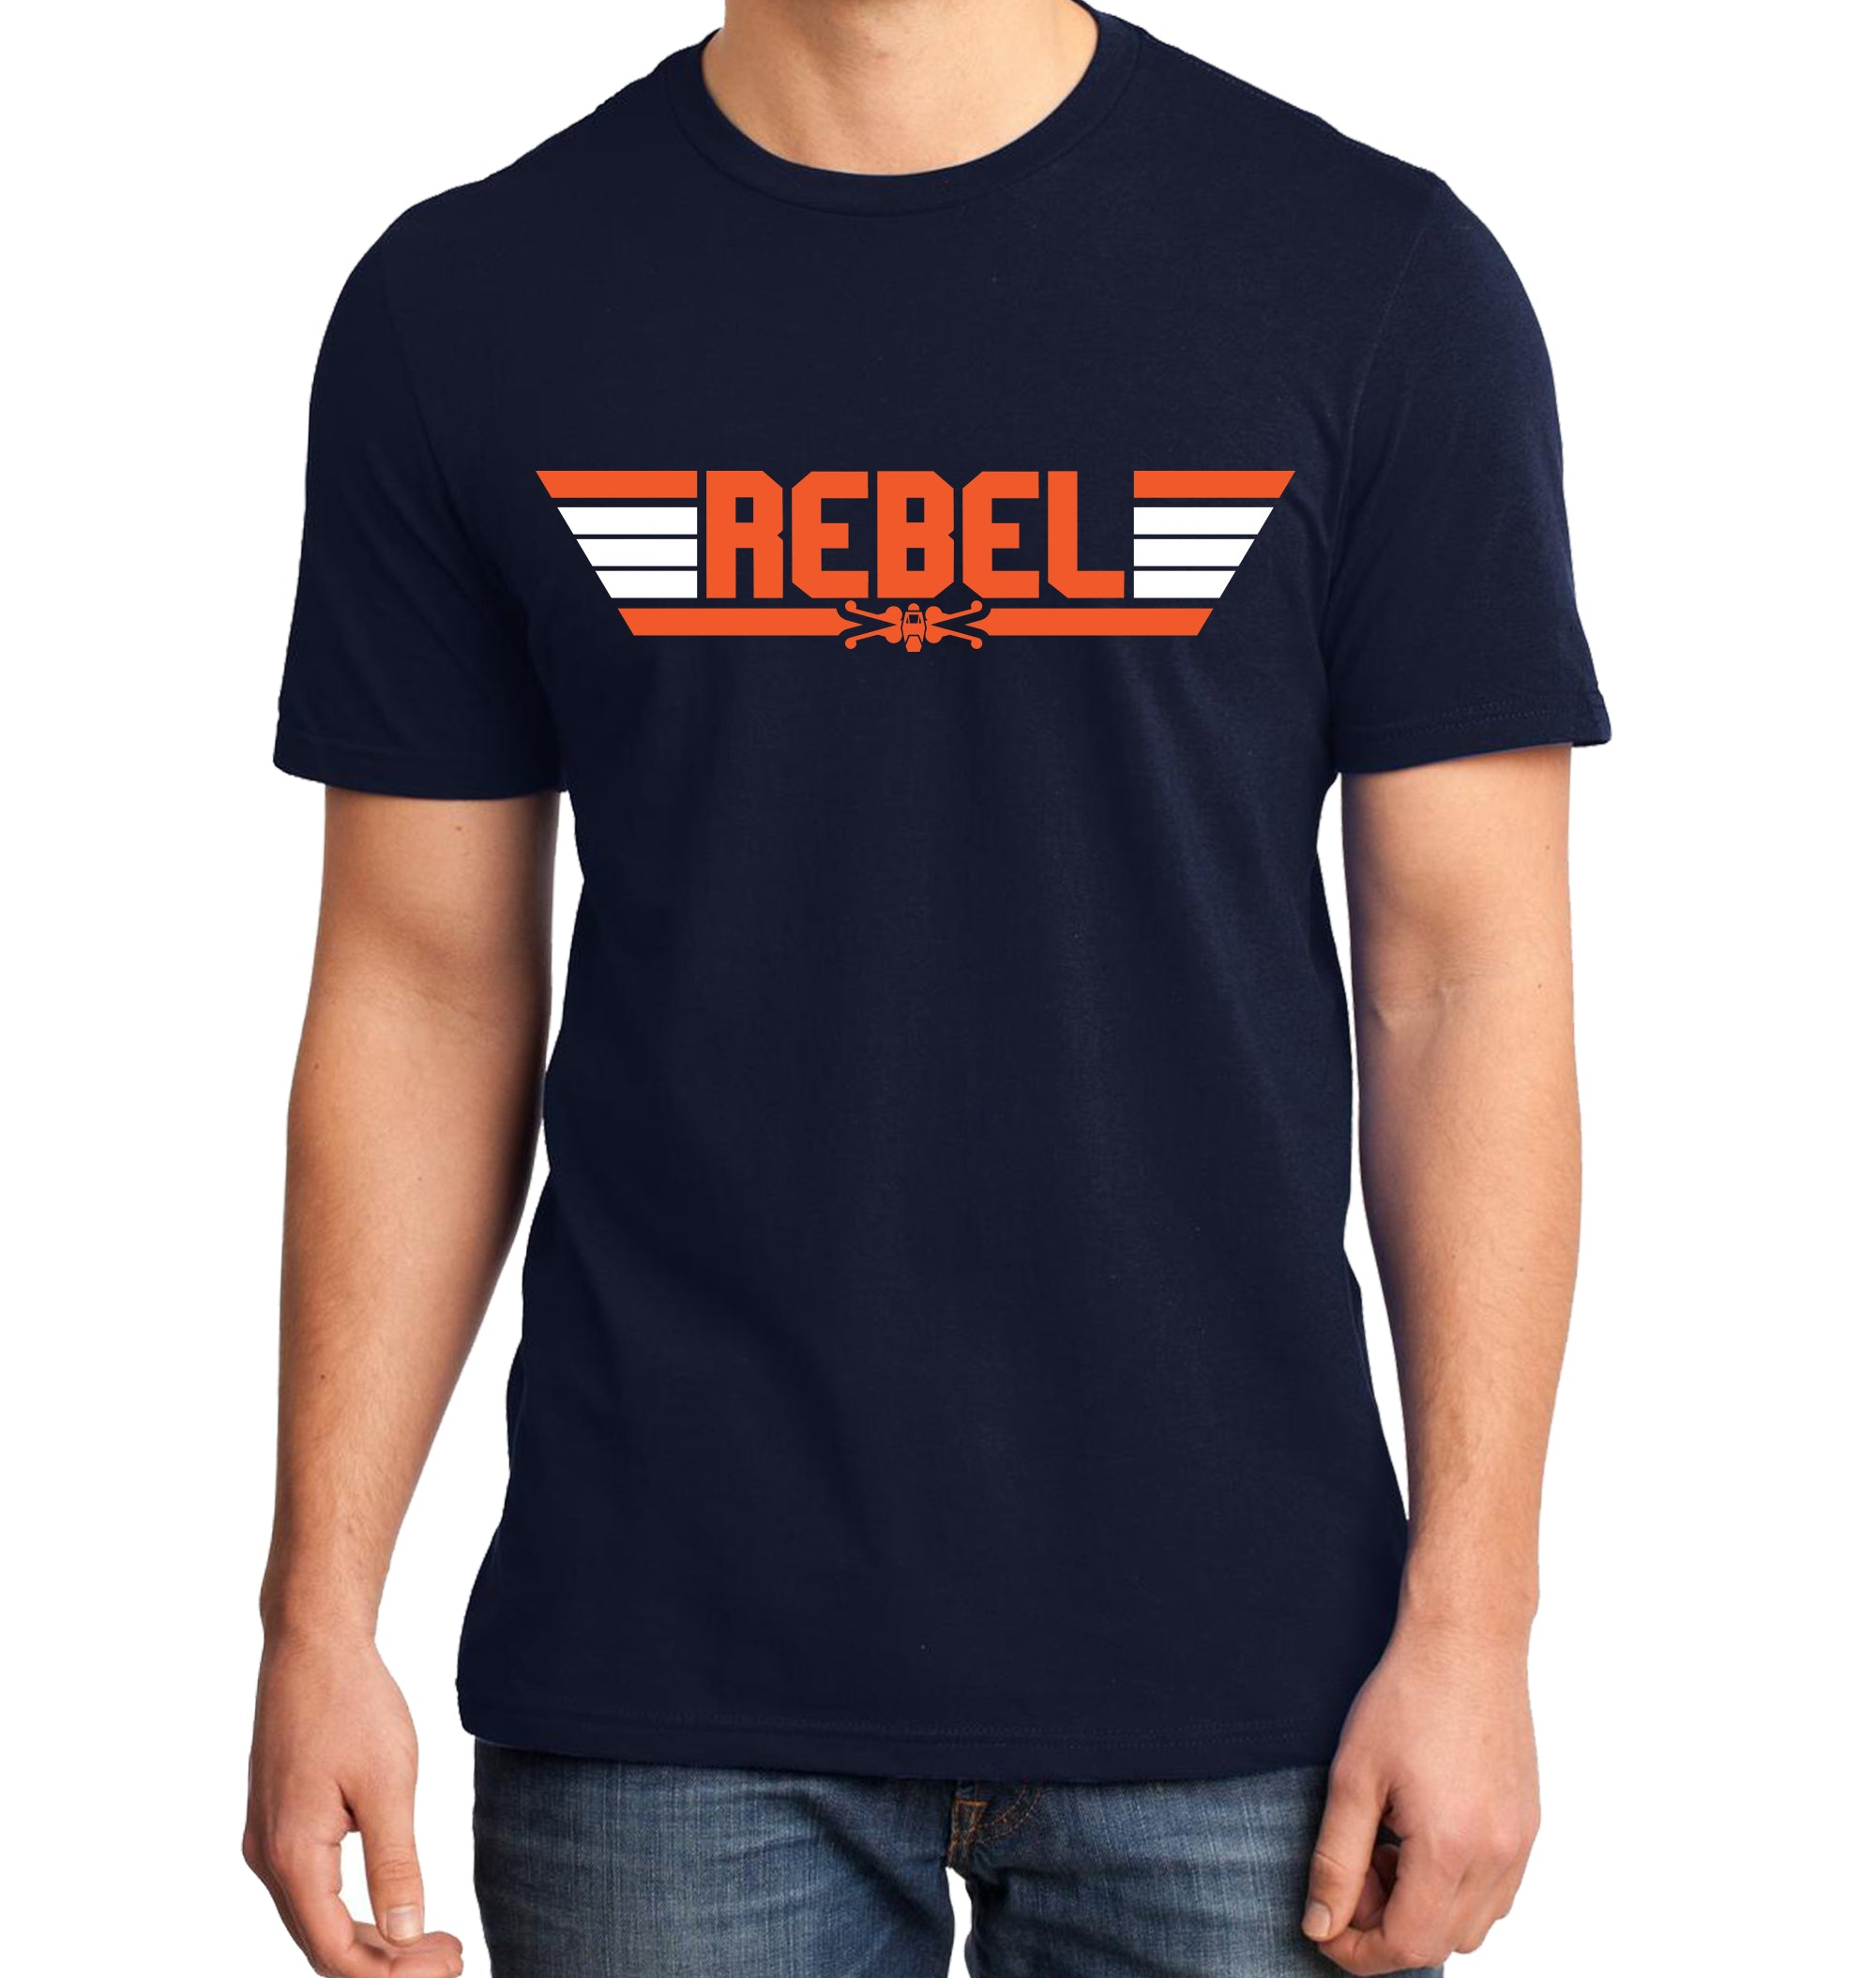 Top Gun Rebel Pilot T-Shirt on Model with Blue Shirt